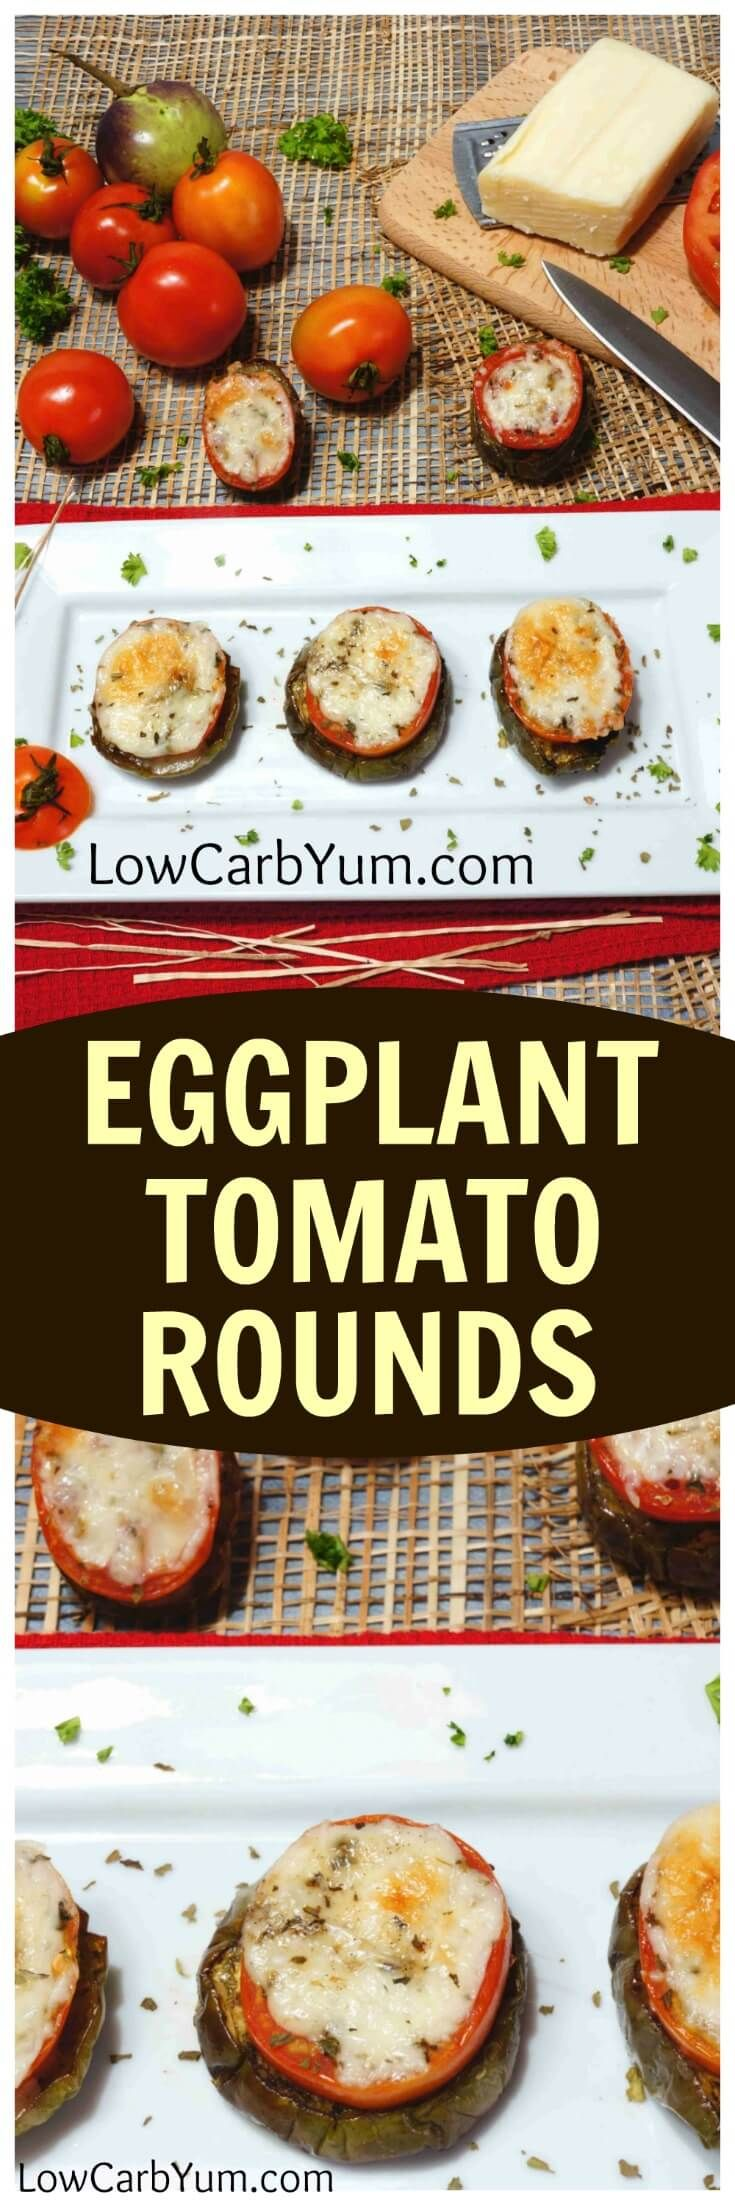 A simple low carb gluten free eggplant tomato appetizer covered in melted cheese. This is a quick and tasty way to serve fresh eggplant and tomato from the garden.   LowCarbYum.com